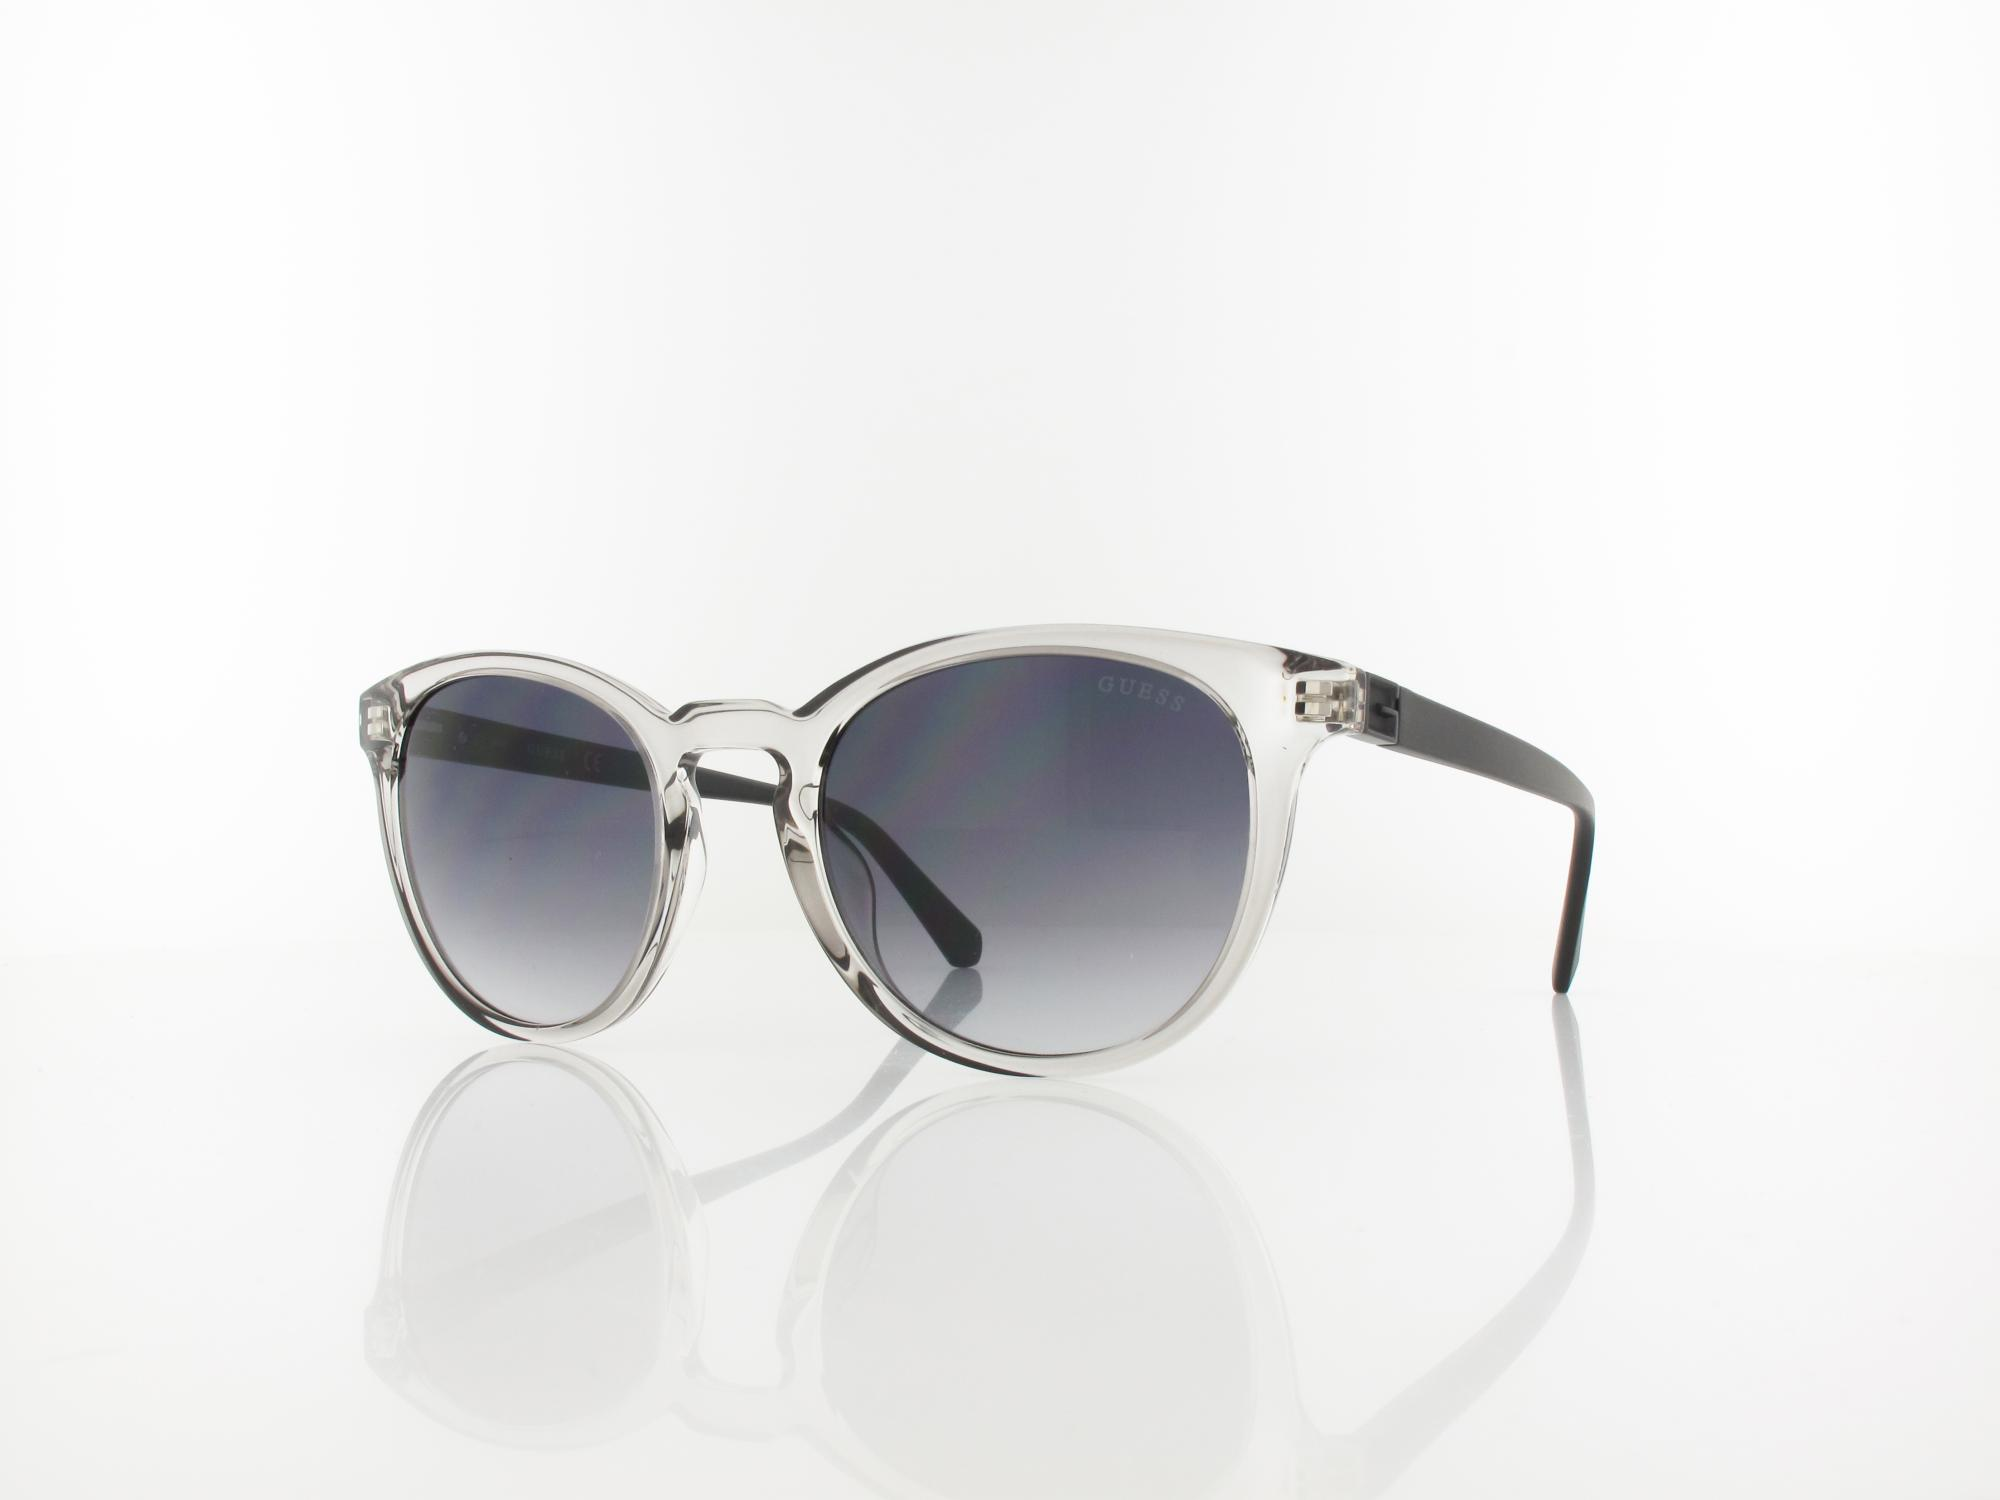 Guess | GU00005 20B 53 | grey / grey gradient